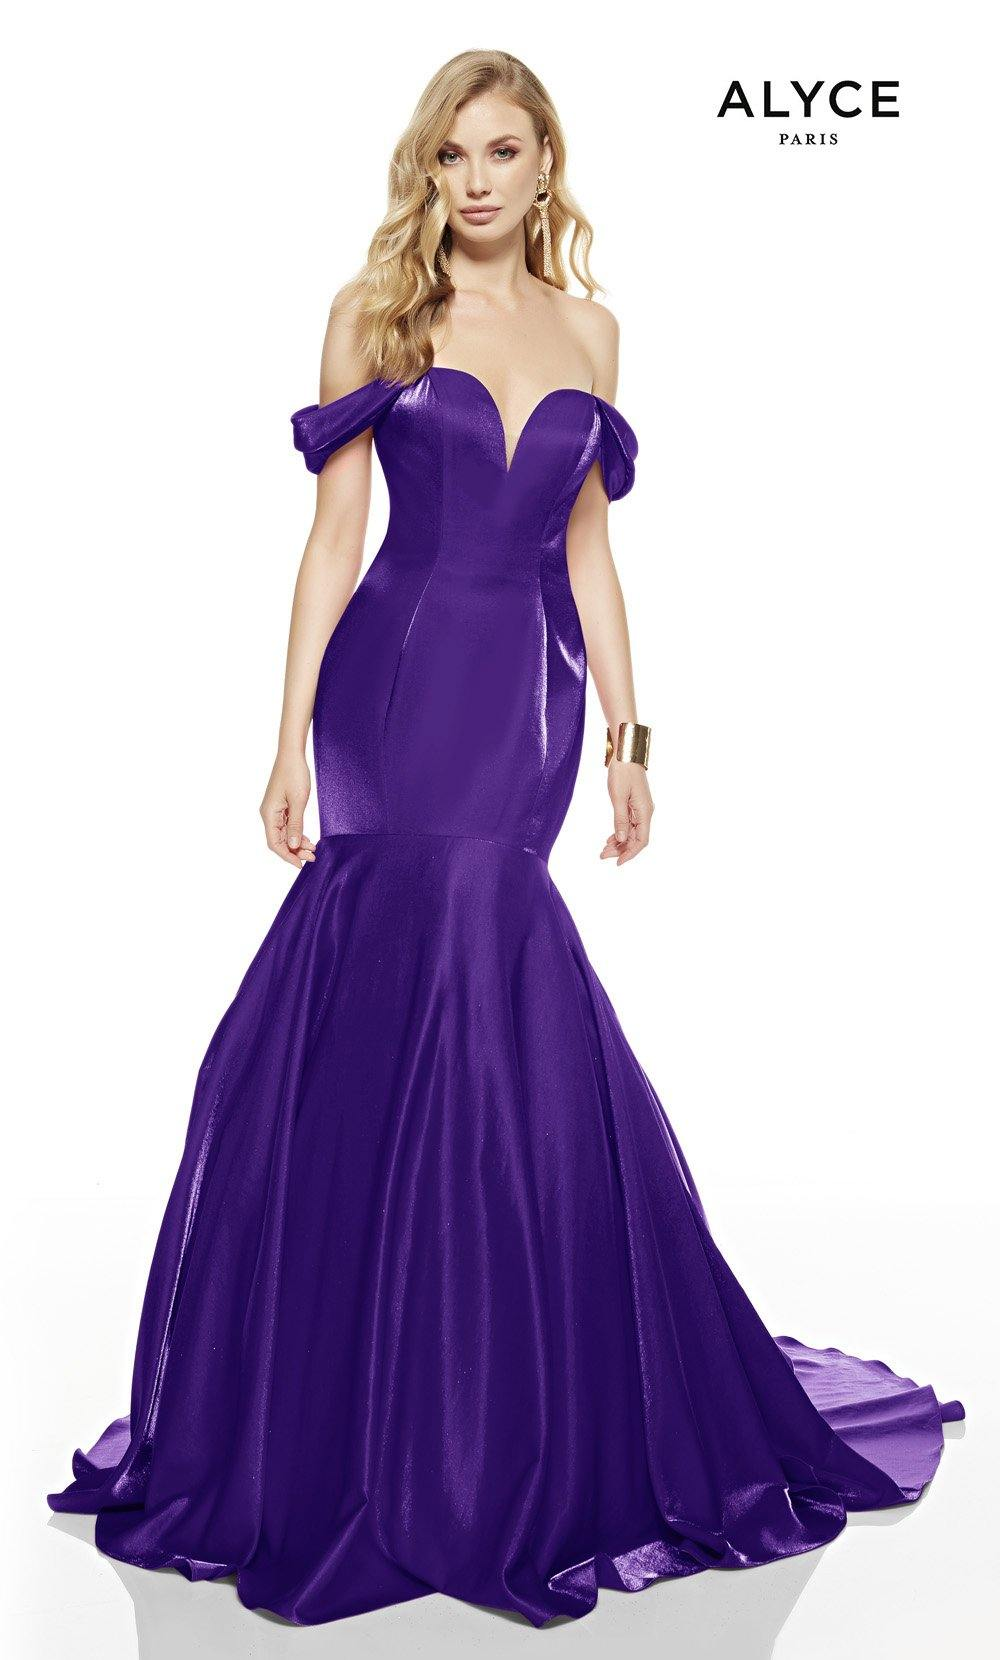 Cobalt mermaid prom dress with an off shoulder neckline